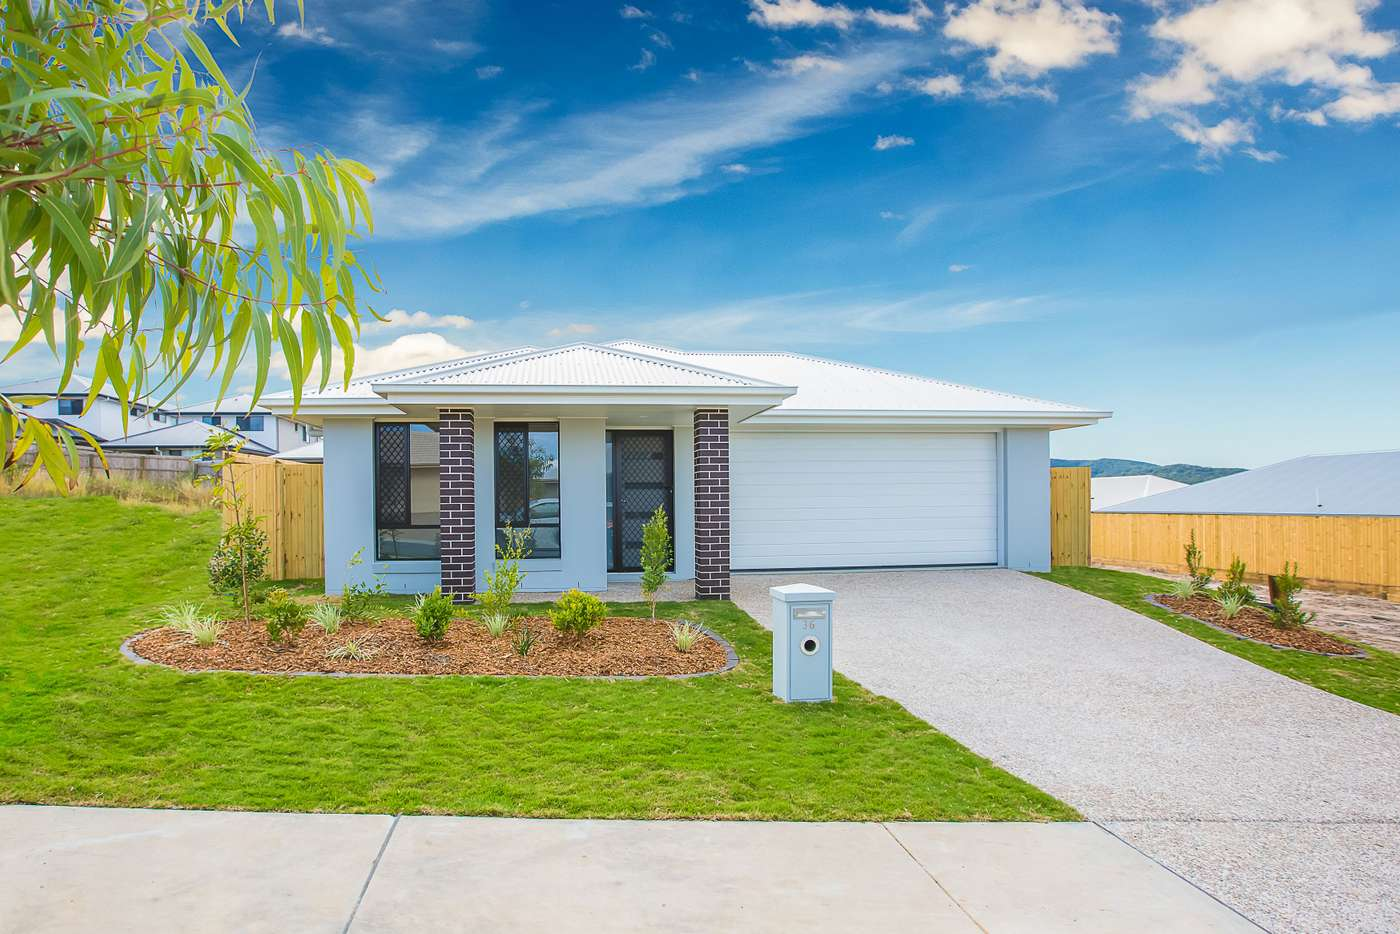 Main view of Homely house listing, 36 Shilin Street, Yarrabilba QLD 4207